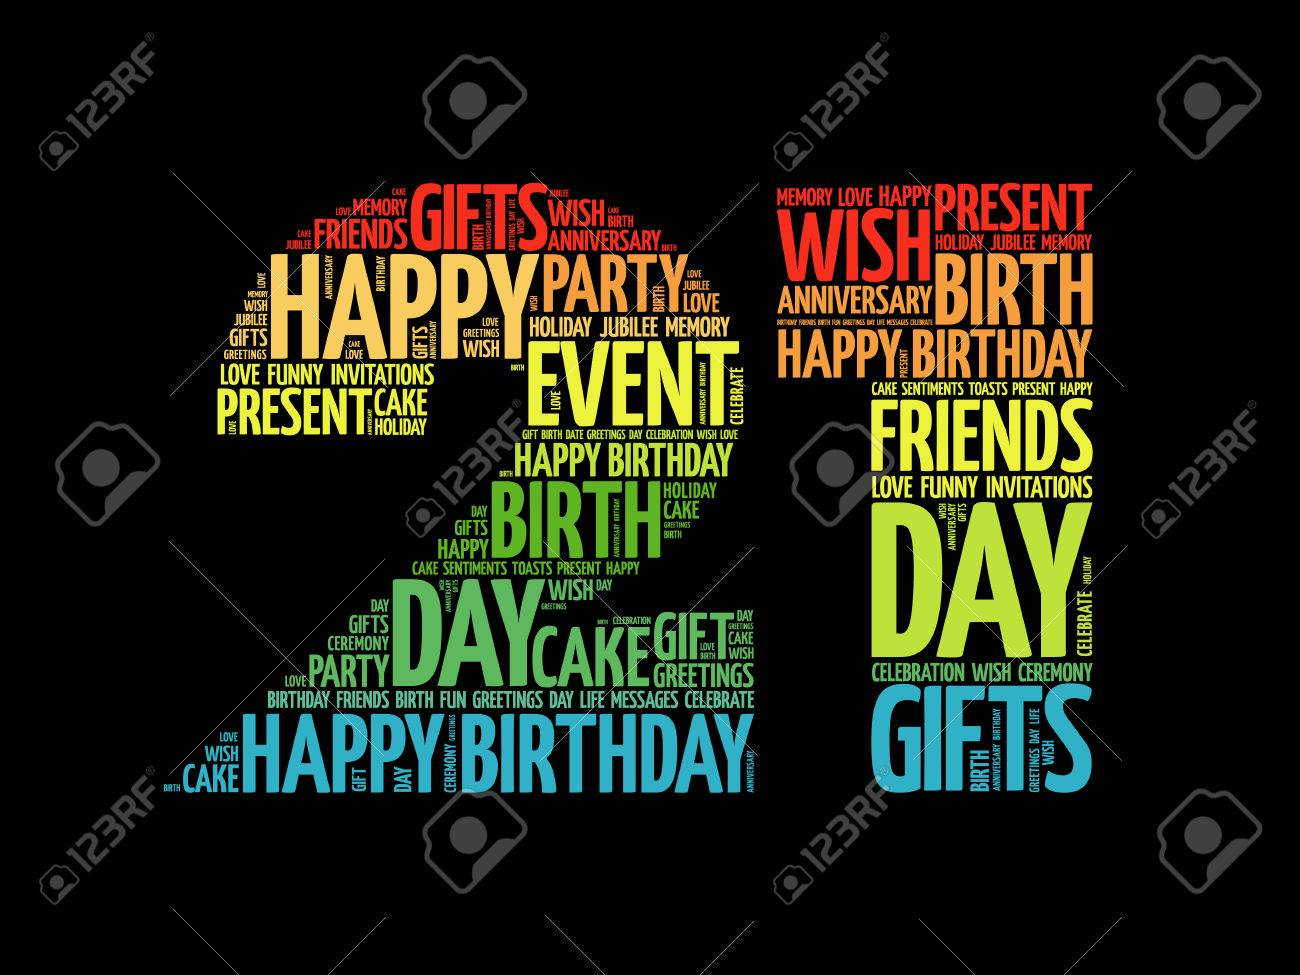 Happy 21st Birthday Images.Happy 21st Birthday Word Cloud Collage Concept